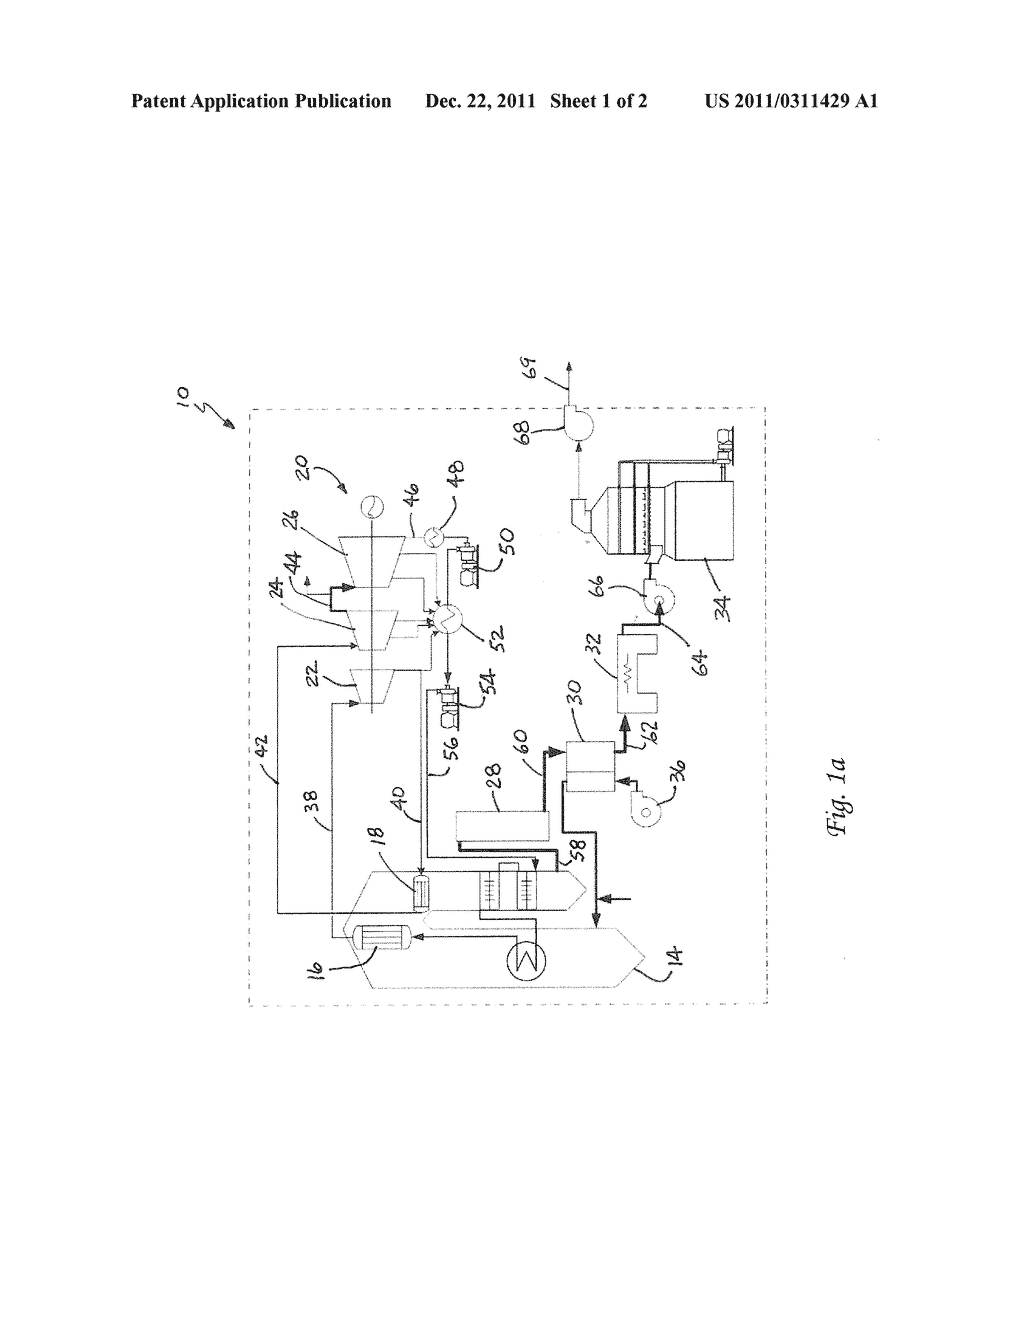 Method For Removing Co2 From Coal Fired Power Plant Flue Gas Using Diagram Ammonia As The Scrubbing Solution With A Chemical Additive Reducing Nh3 Losses